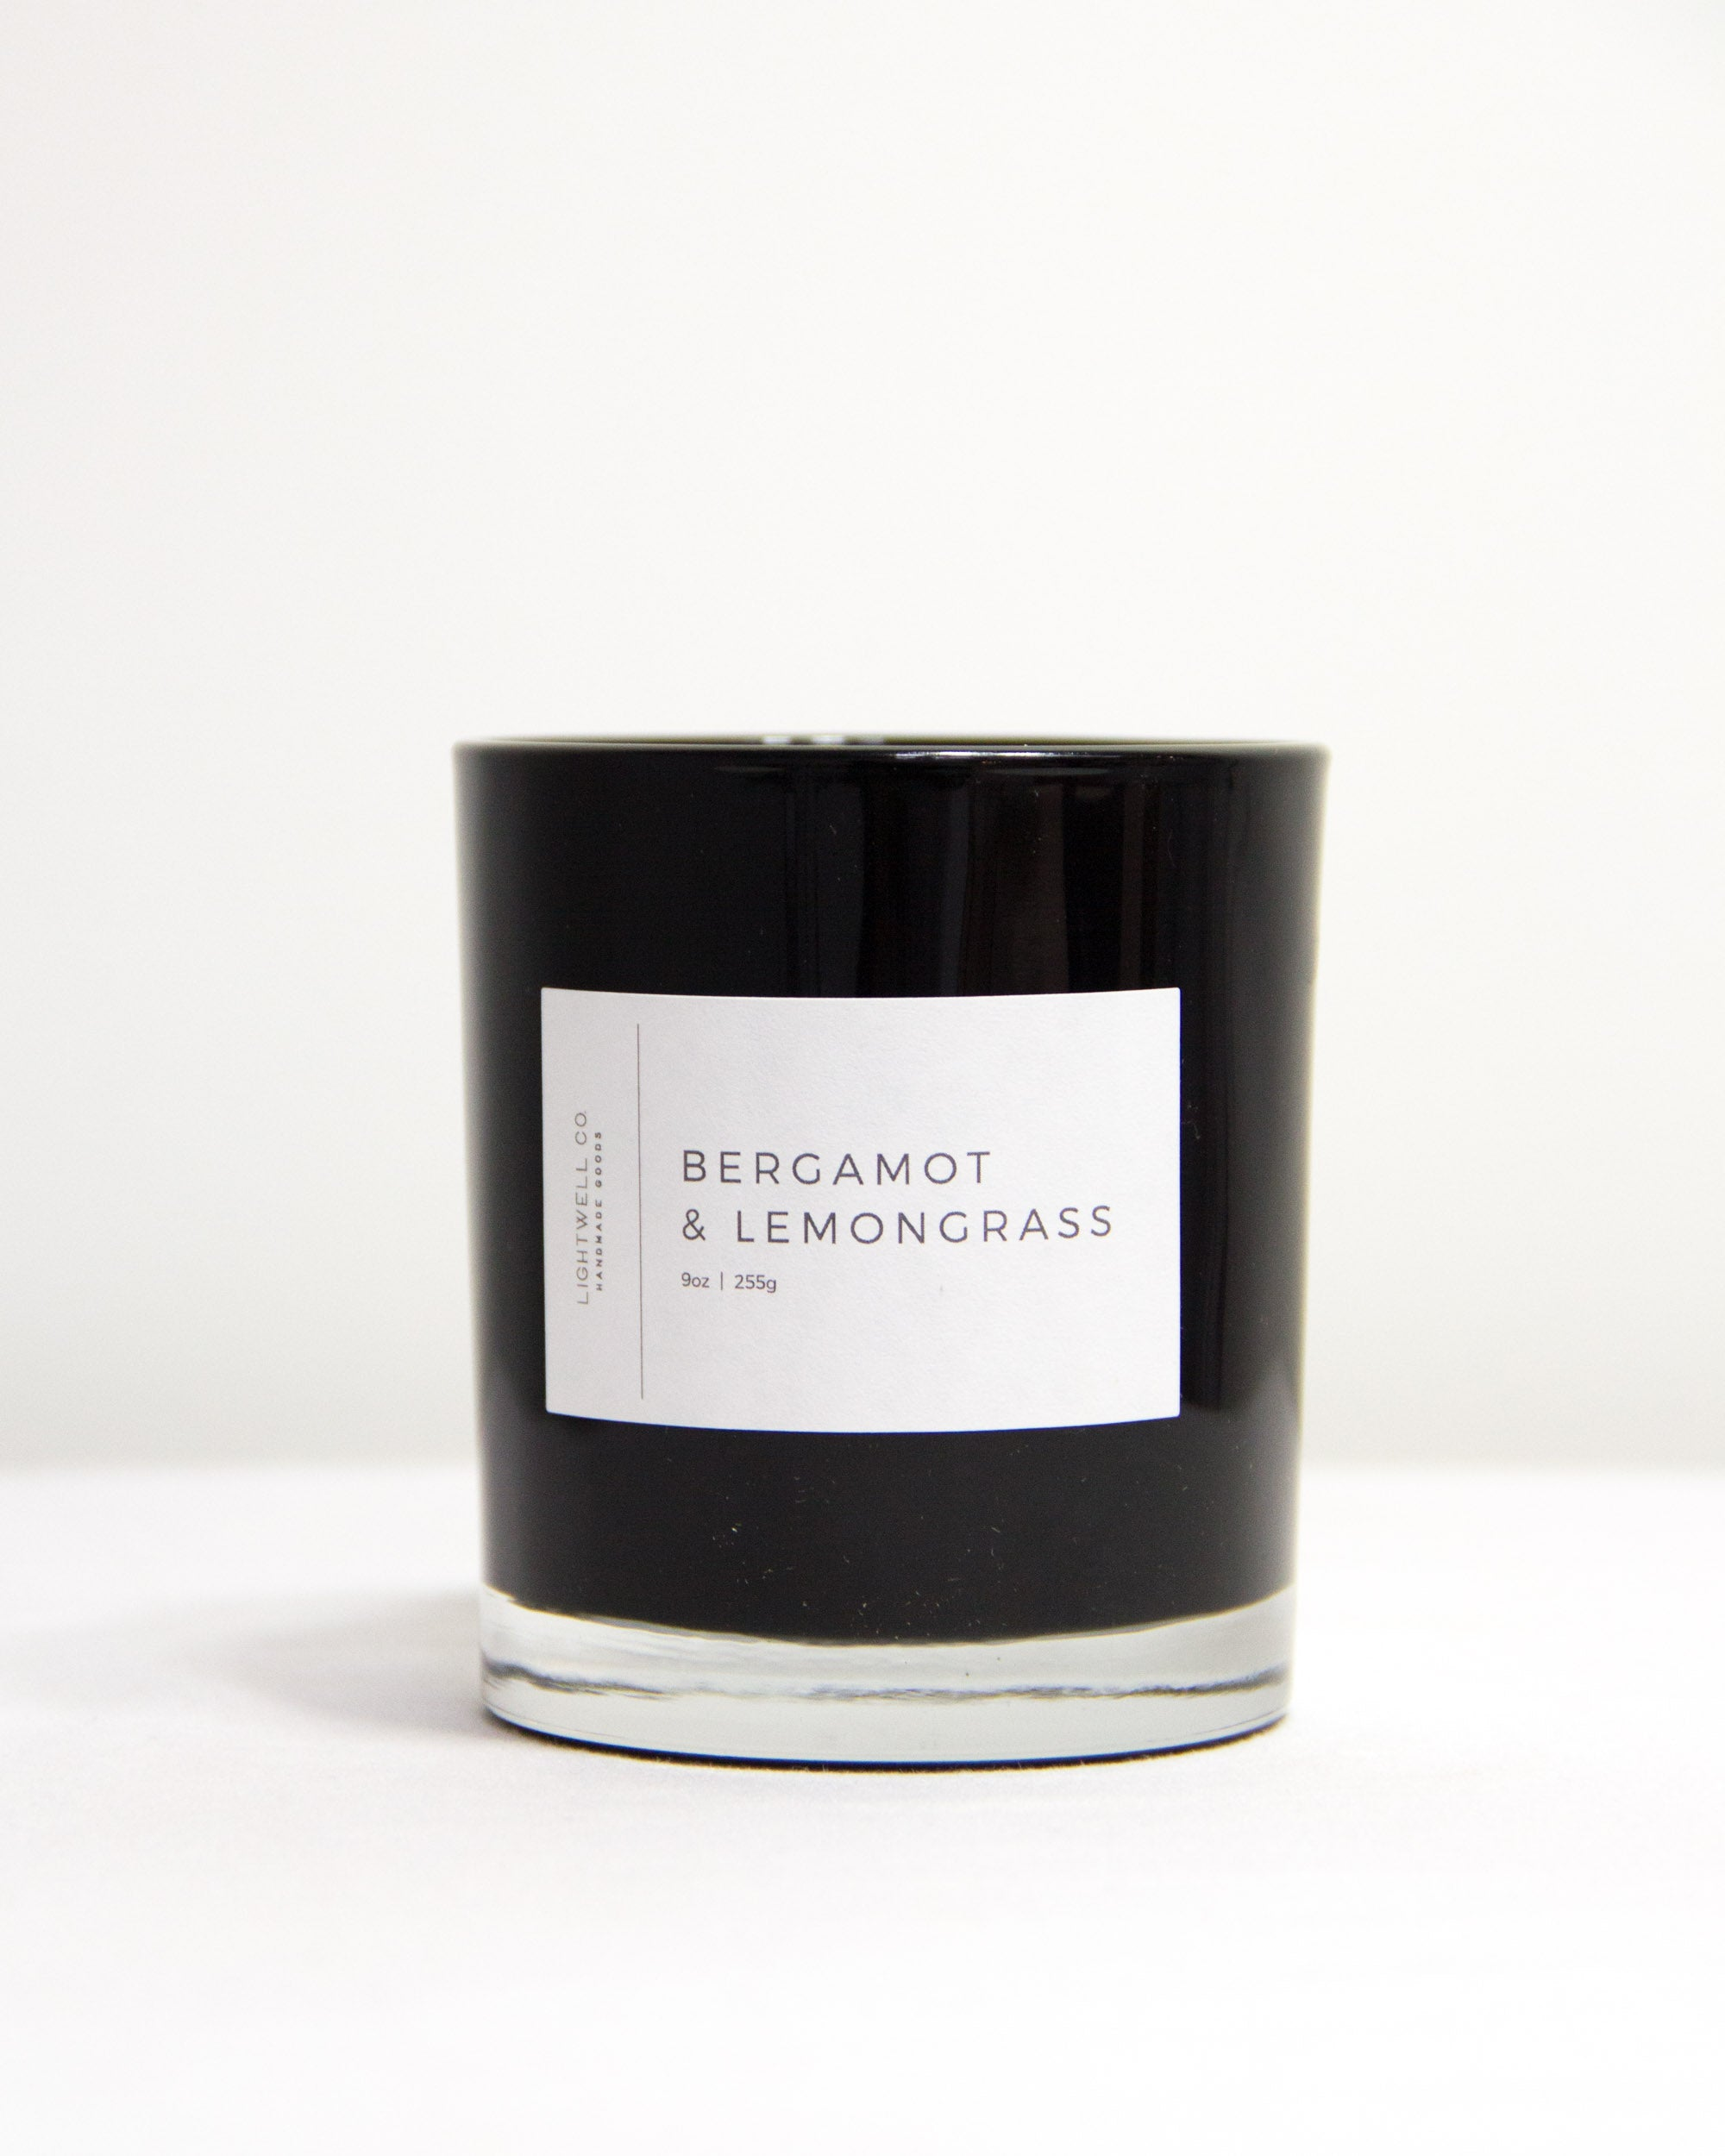 Black Tumbler Candle | Bergamot & Lemongrass | Lightwell Co.-Apothecary-Lightwell Co.-Forth and Nomad